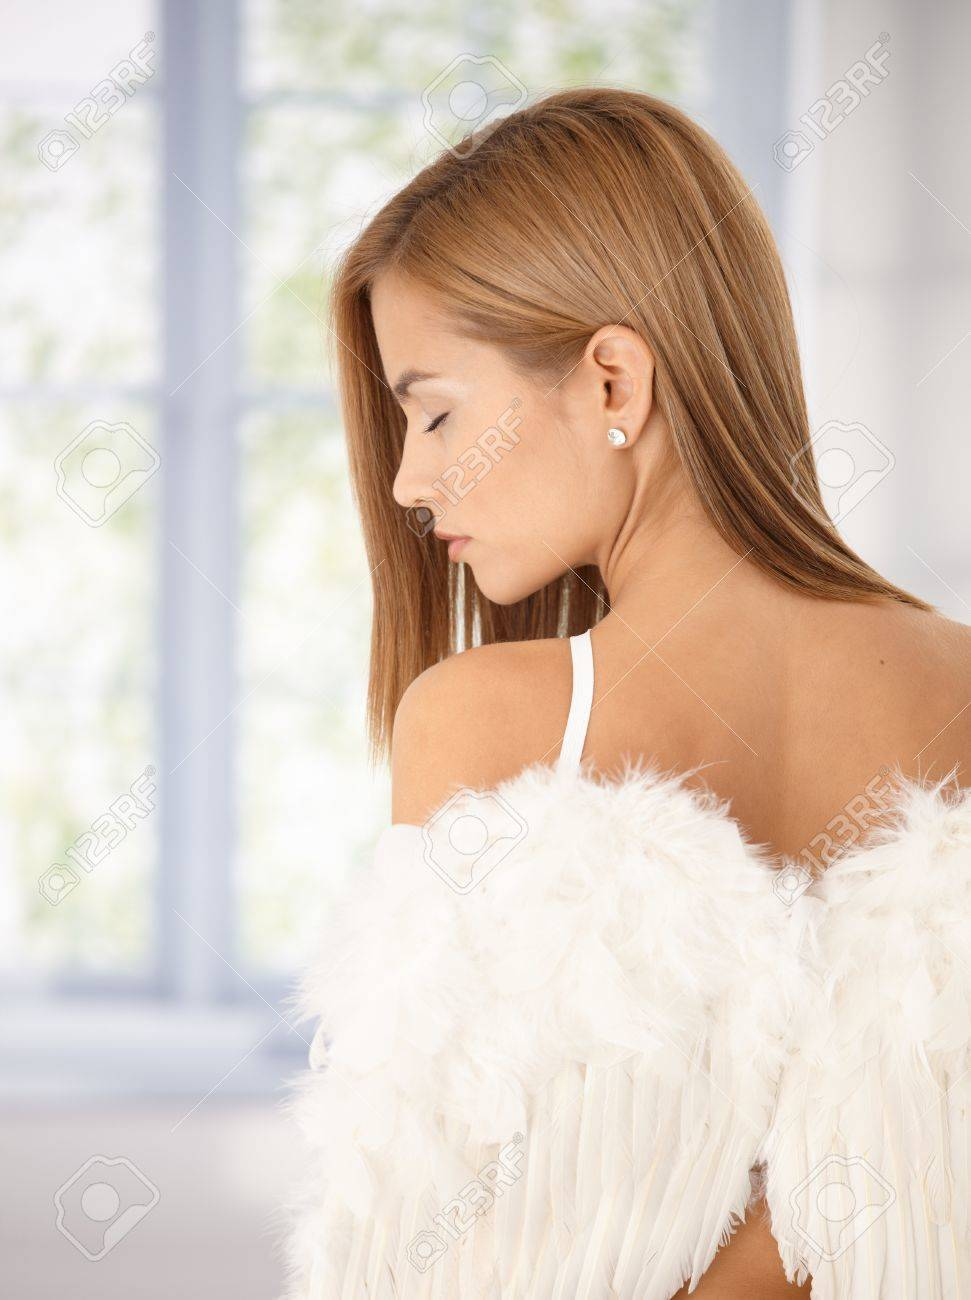 Attractive girl front of window with angel wings viewed from back, eyes closed. Stock Photo - 8398030